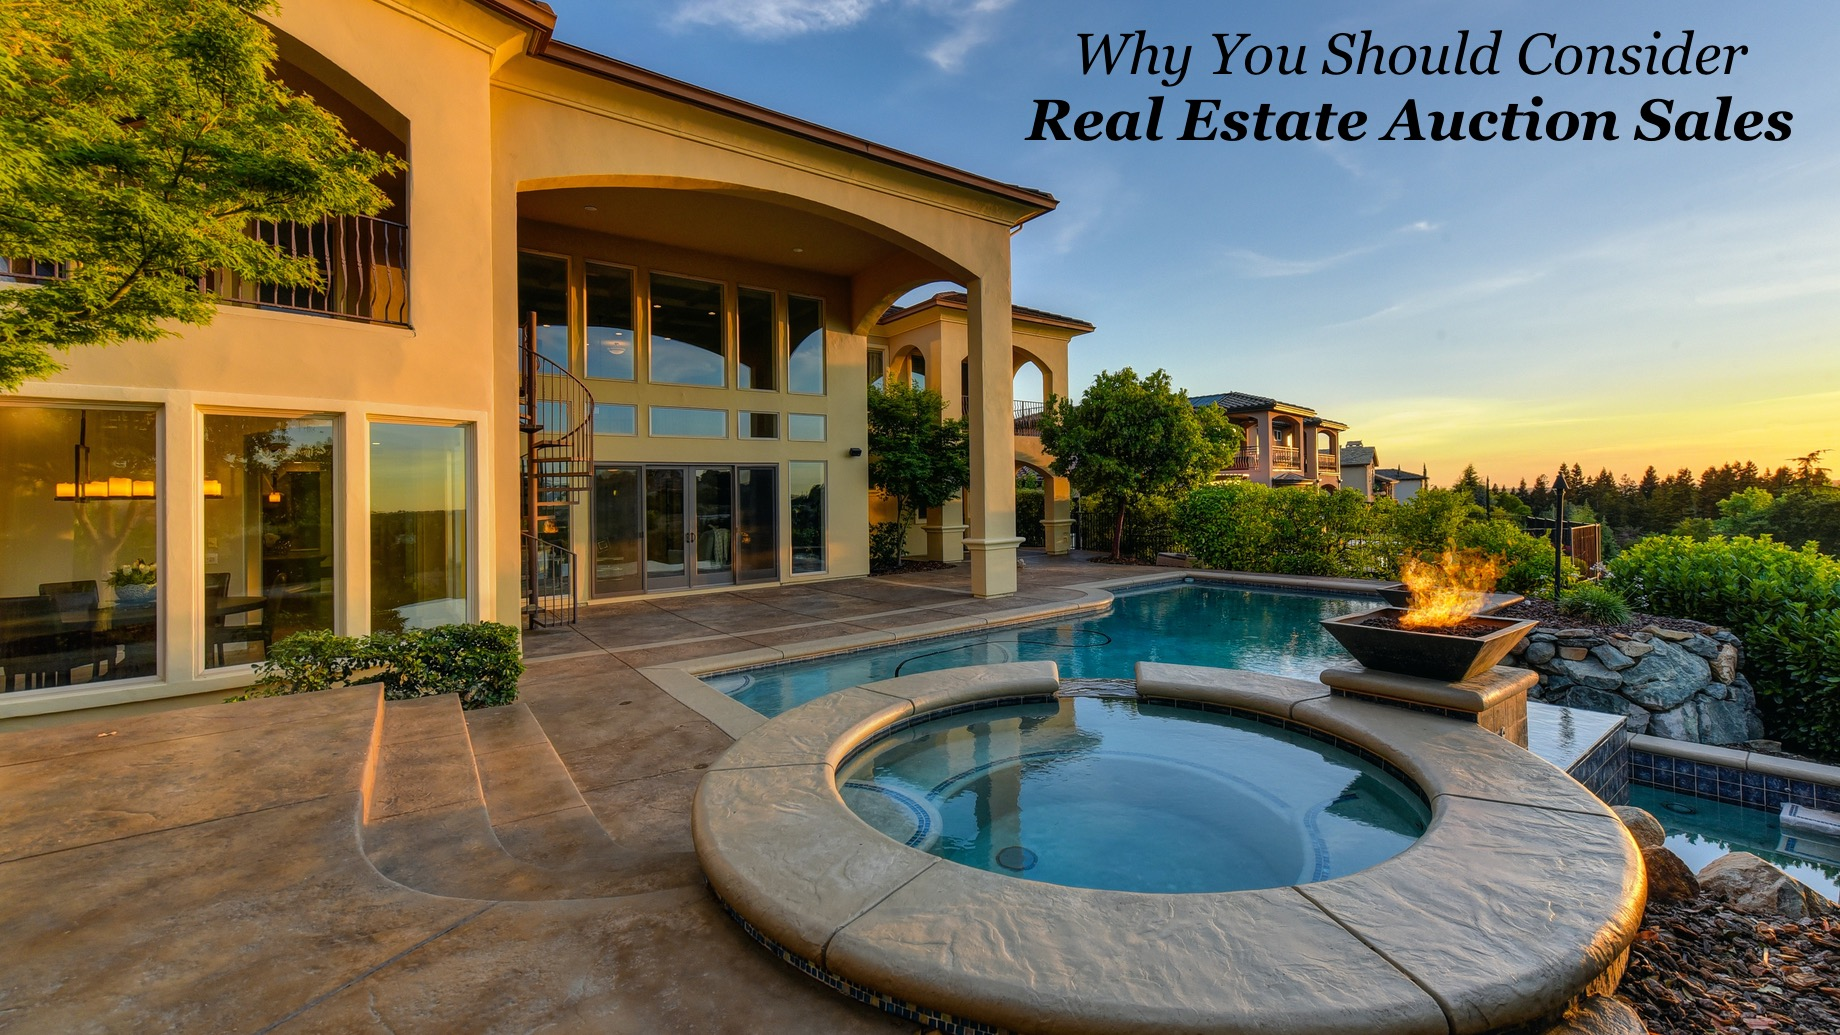 Why You Should Consider Real Estate Auction Sales